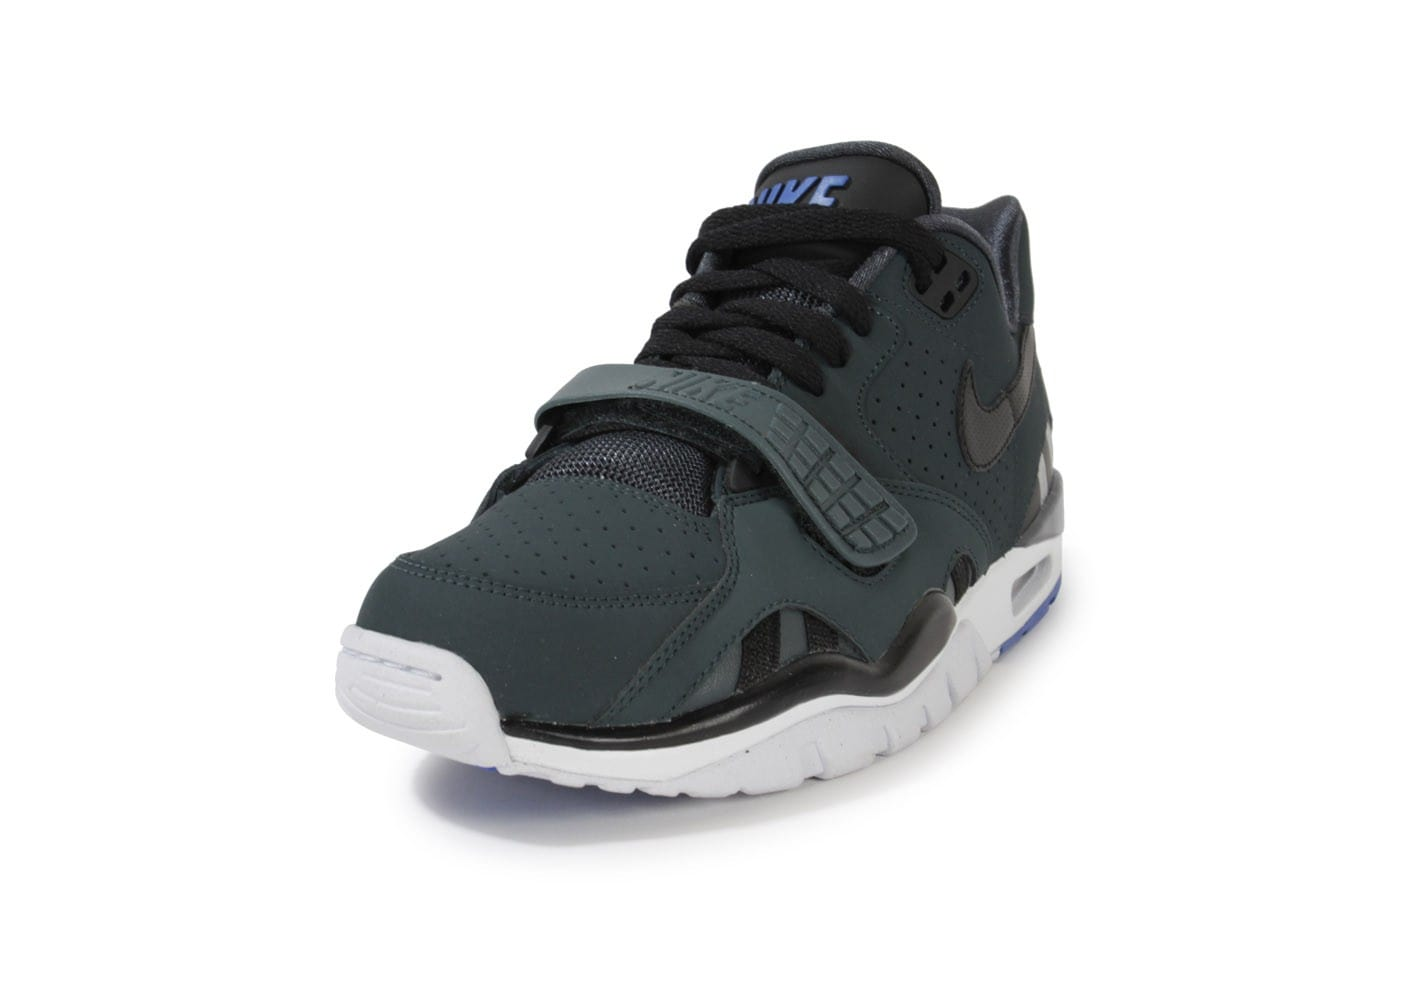 low priced 5318b 520aa ... Chaussures Nike Air Trainer Sc Ii Low Noire vue avant ...